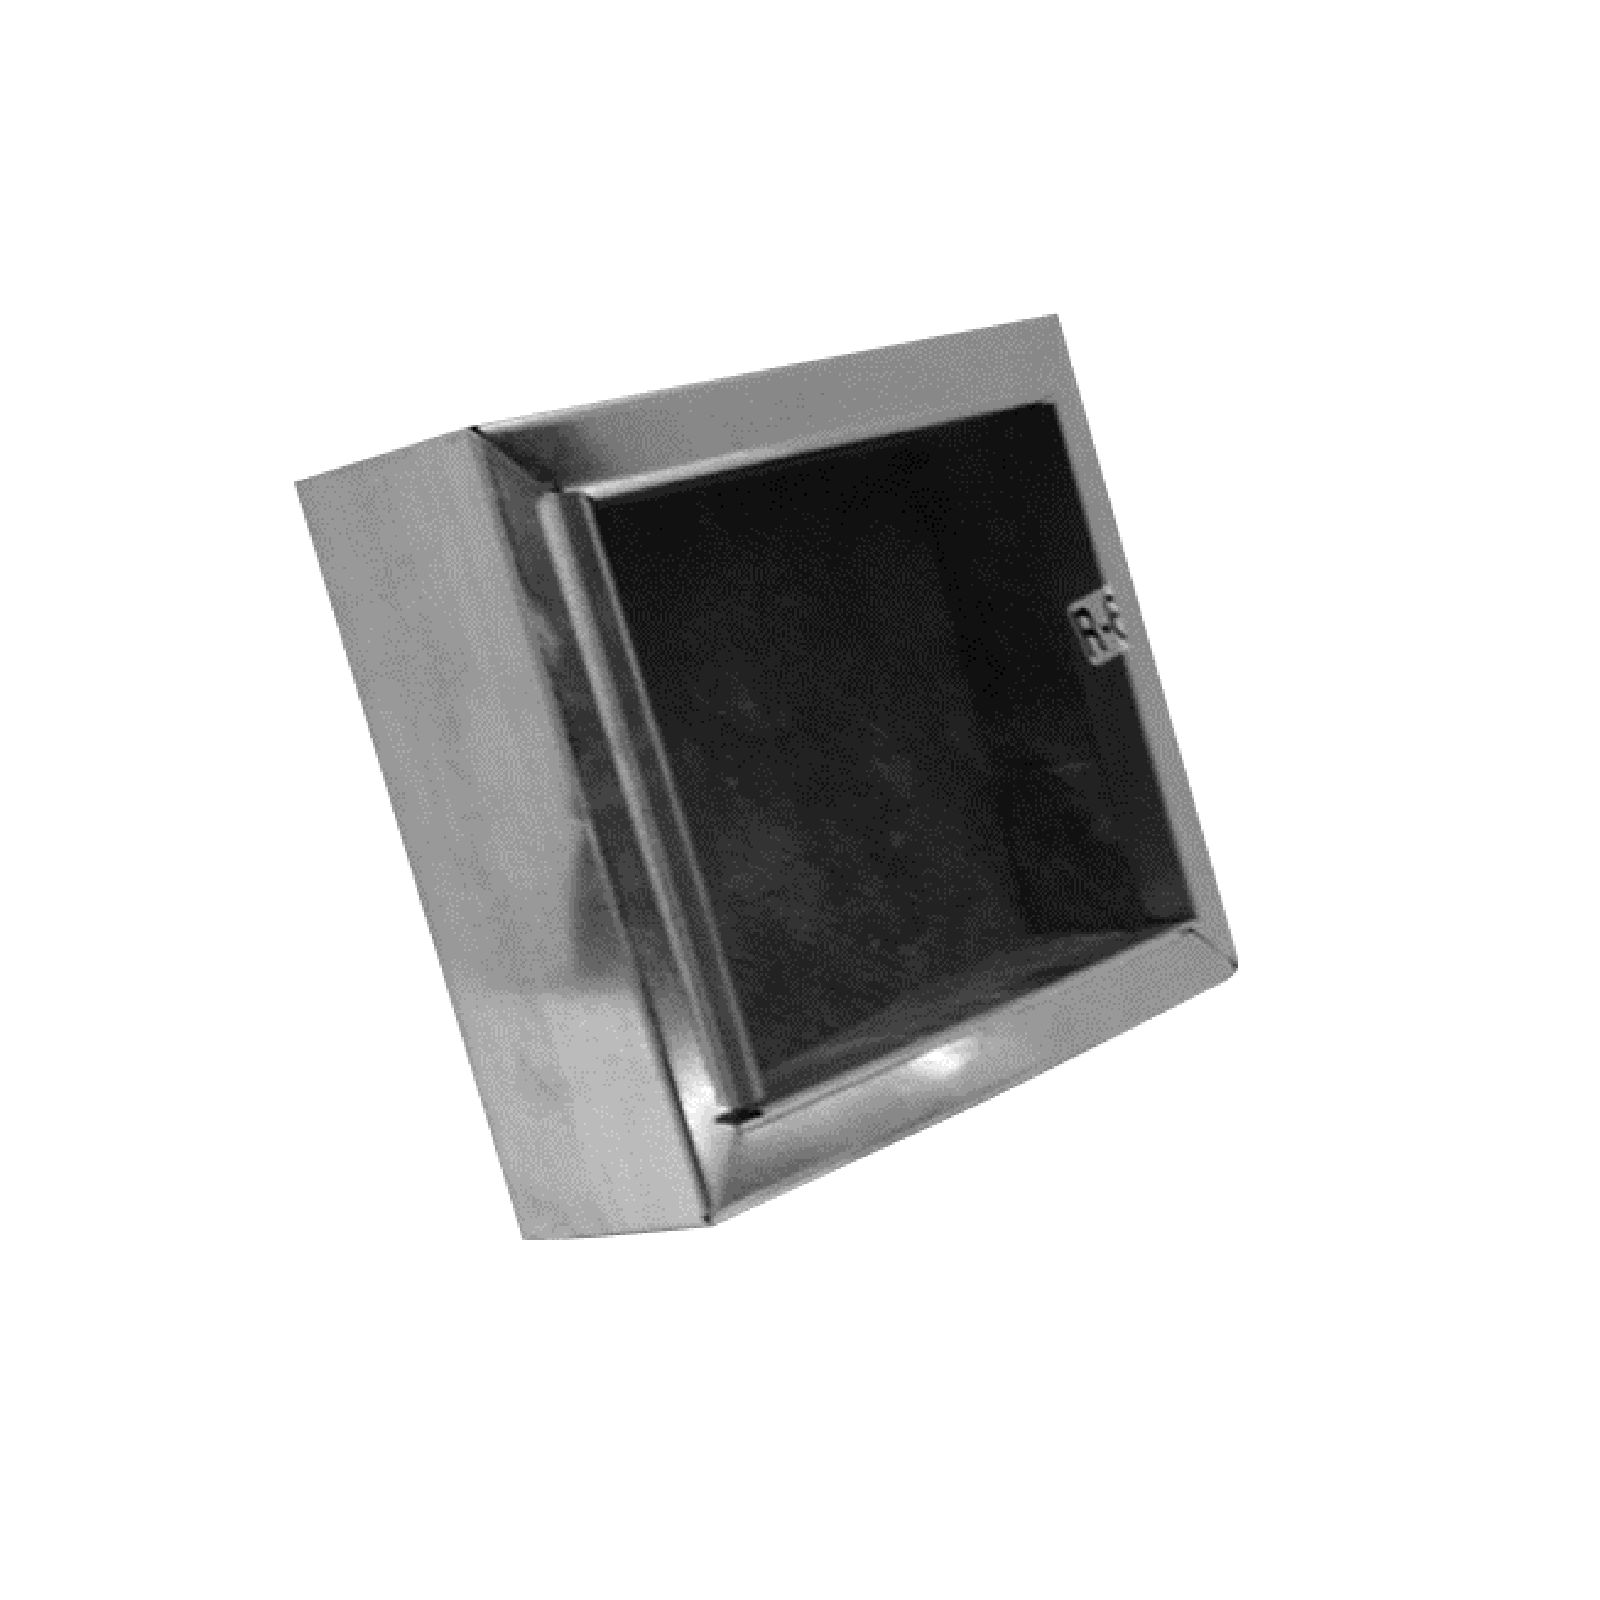 "Mitchell Metal 40R60808 - 8"" X 8"" Ductboard Register Box - R6 Ductboard Applications"